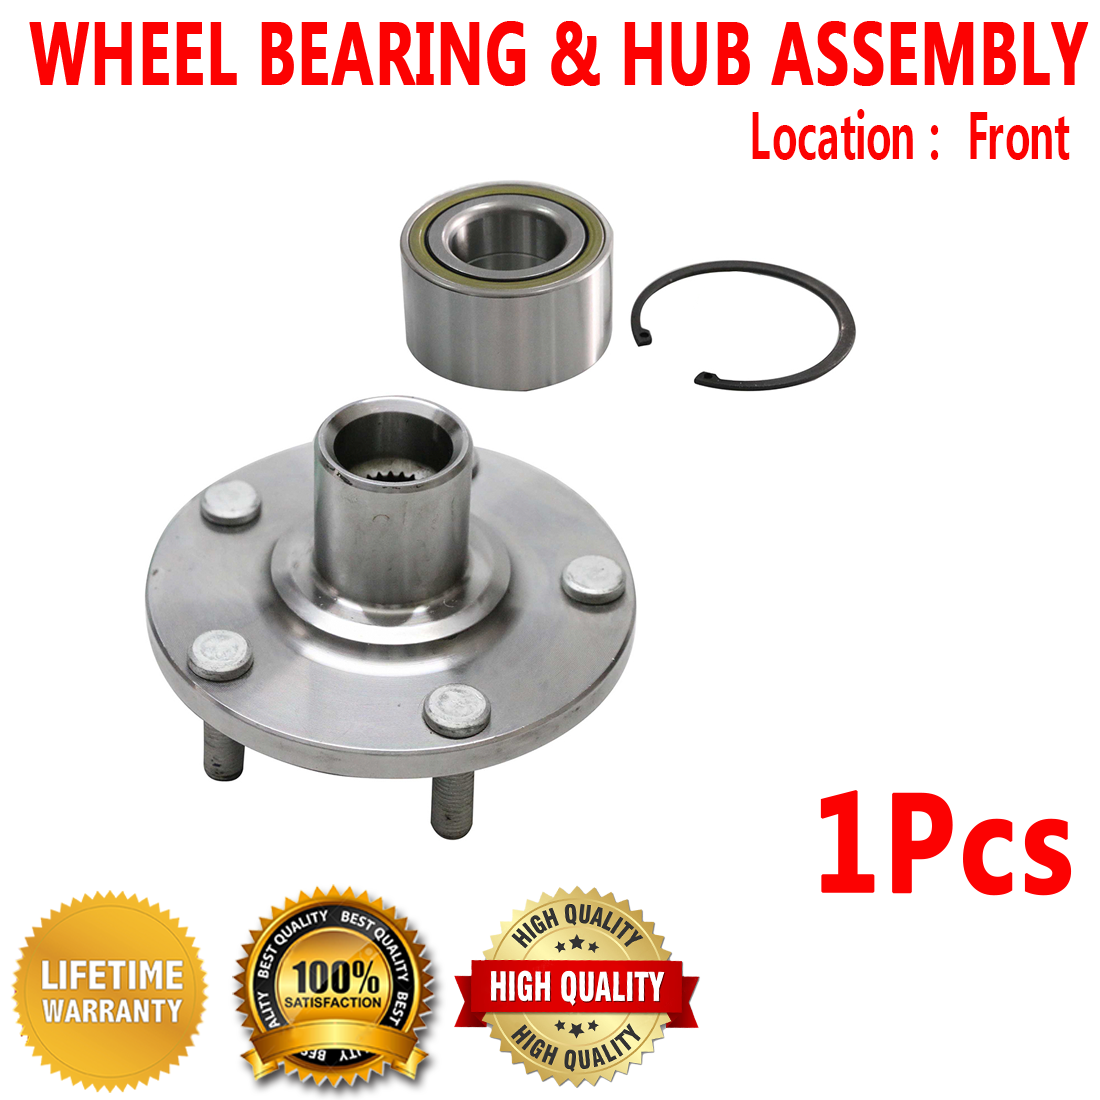 1999 fits Lexus RX300 Front Wheel Bearing Note: AWD, FWD - Two Bearings Included with Two Years Warranty Left and Right